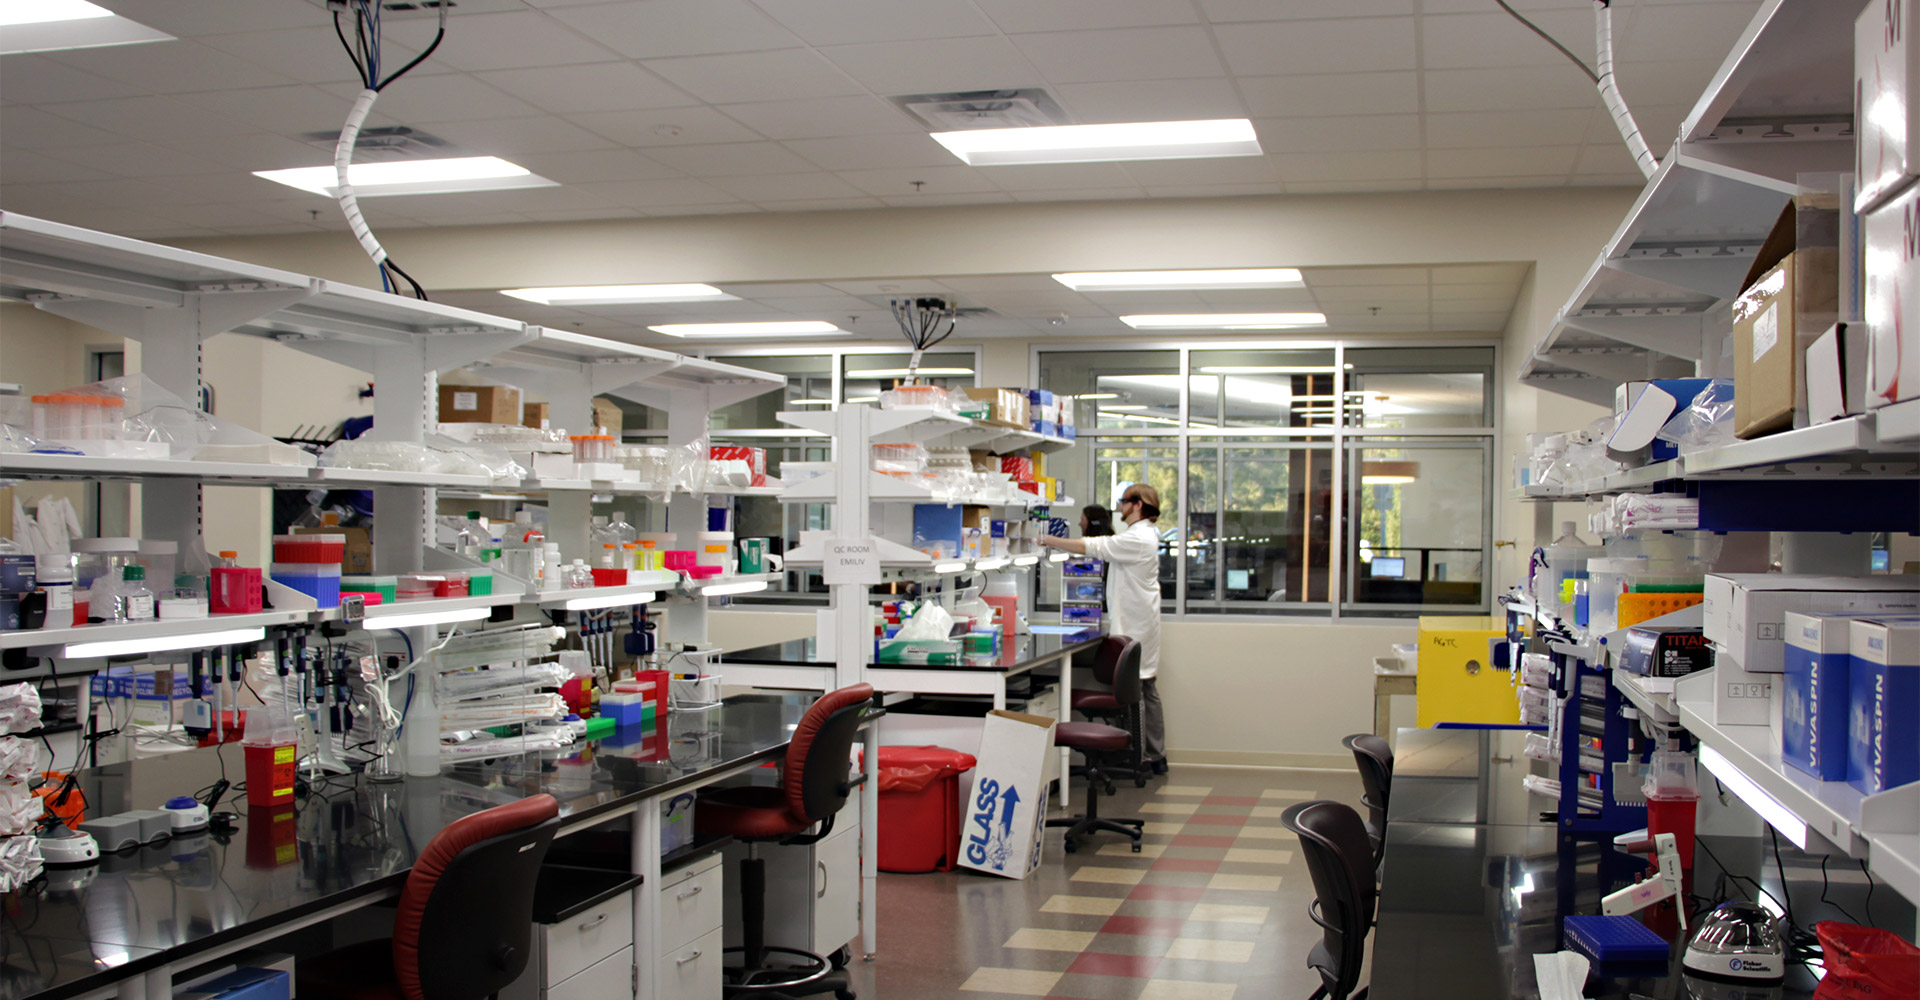 Interior lab at Foundation Park.